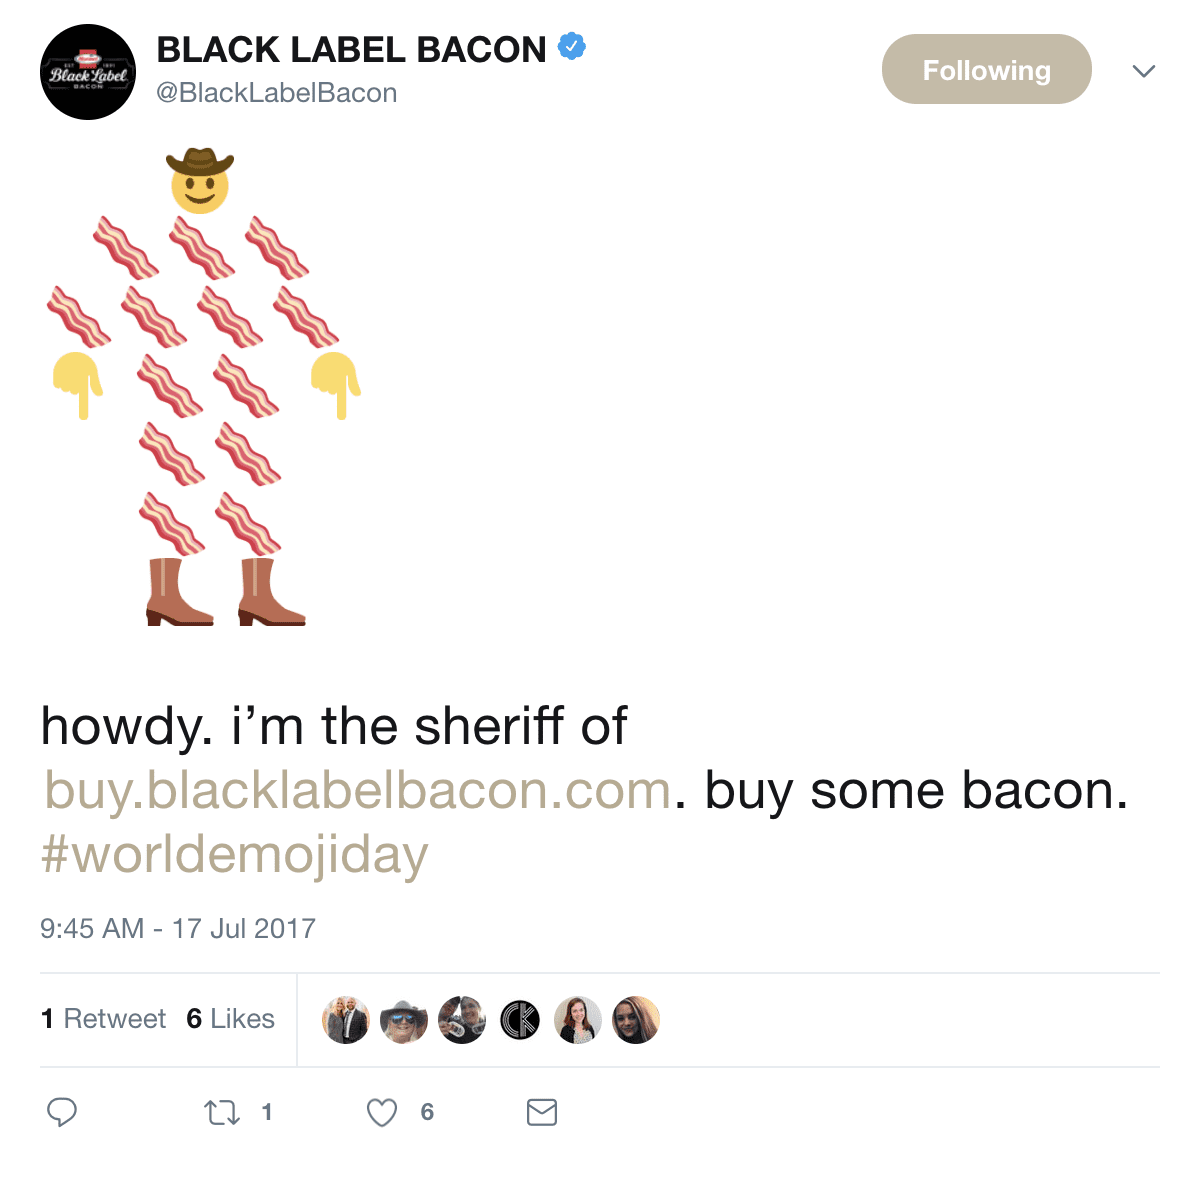 Black Label Bacon Social